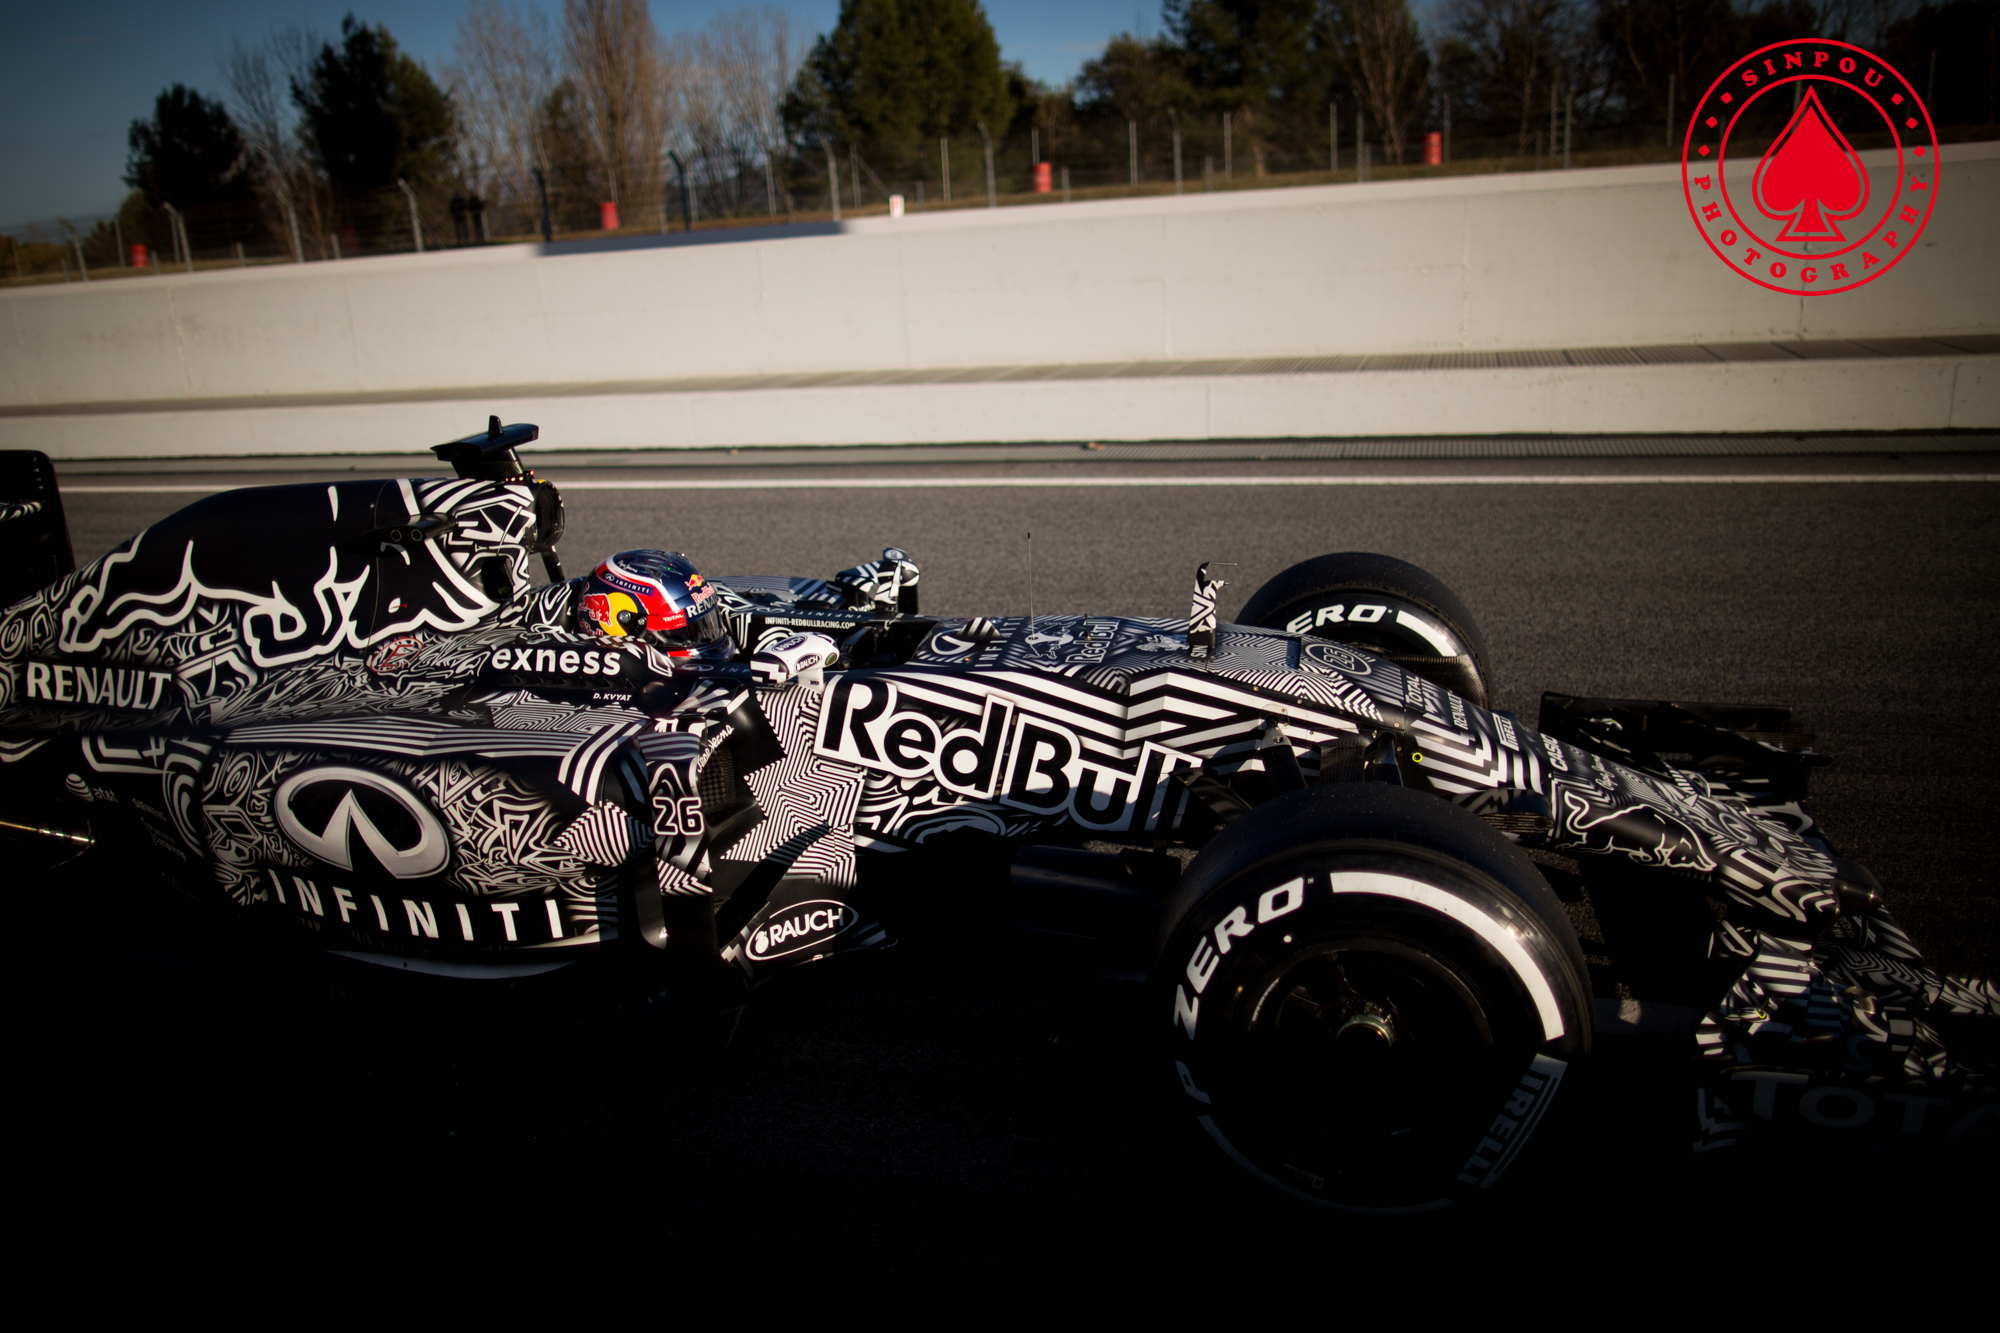 Daniil Kvyat - Red Bull Racing